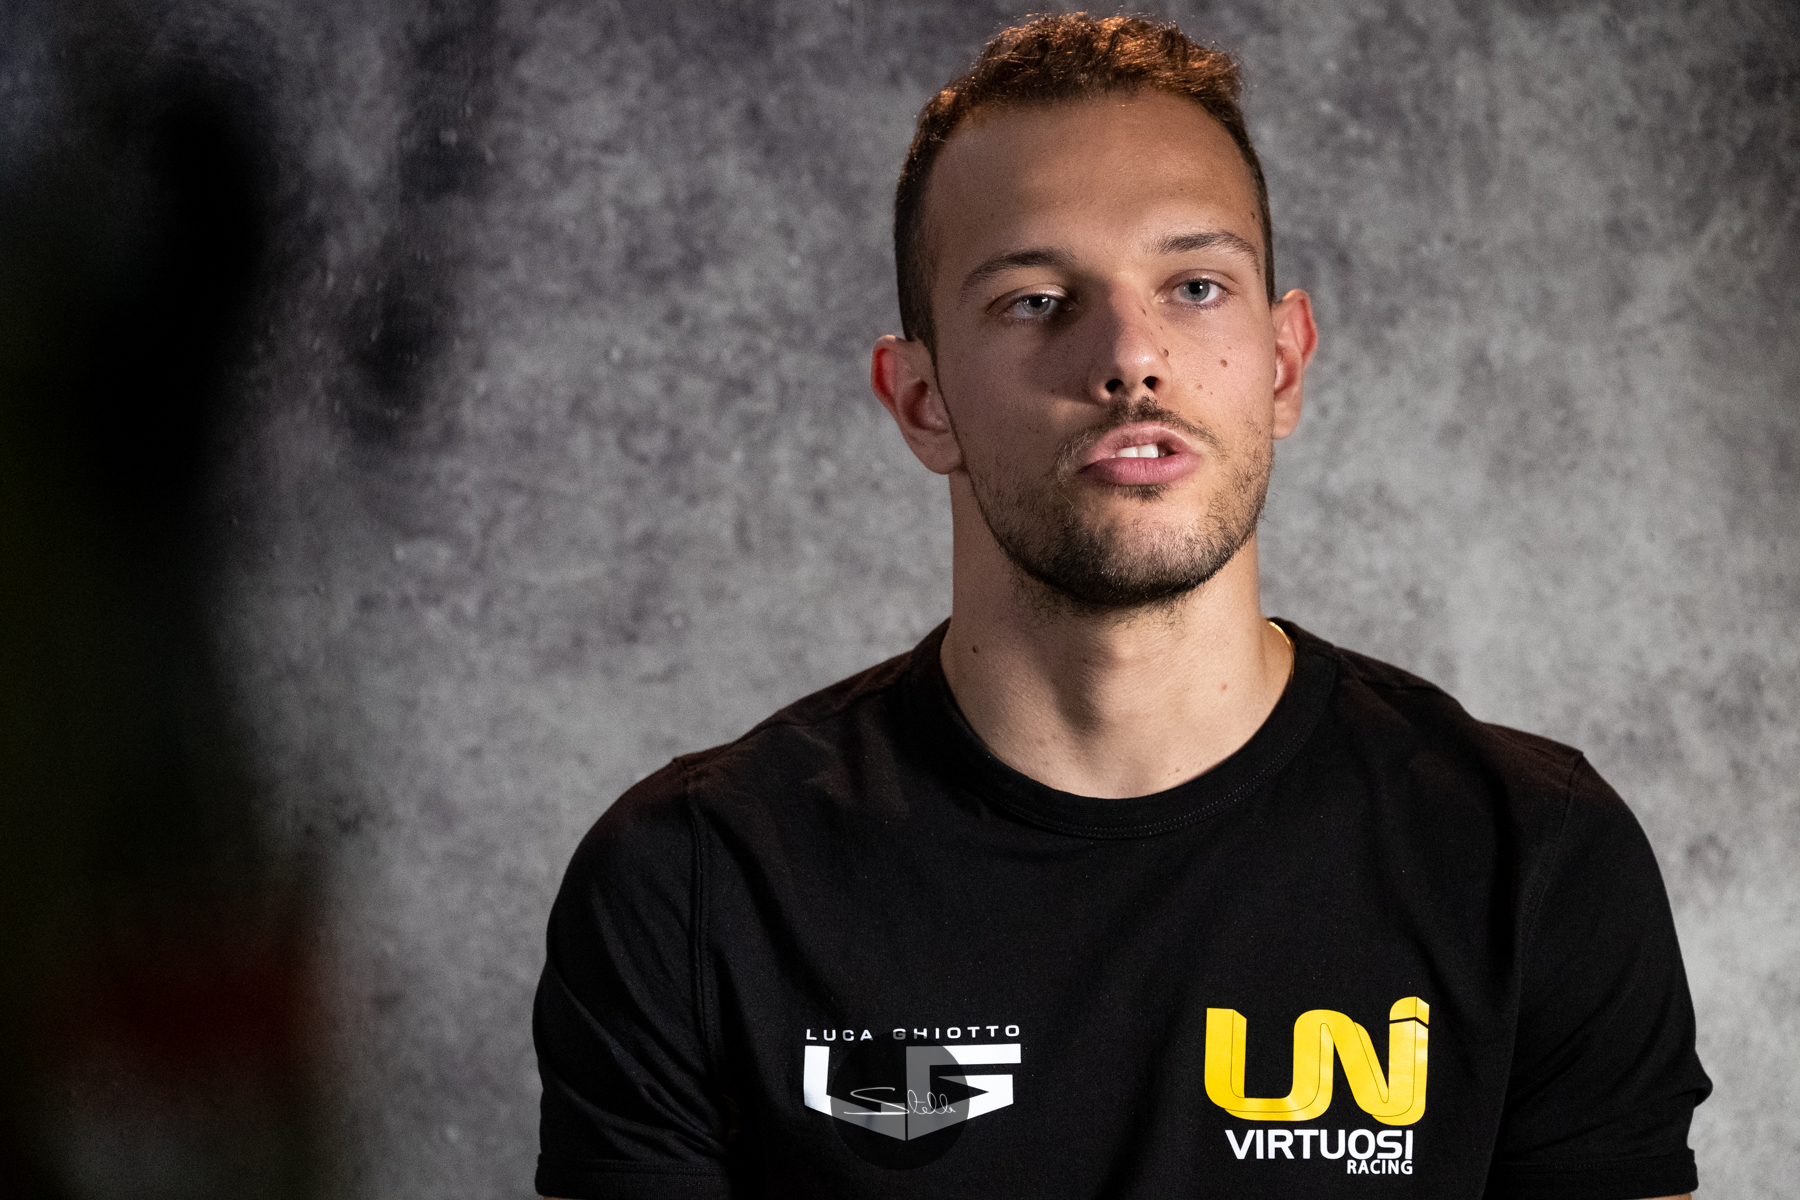 Luca Ghiotto